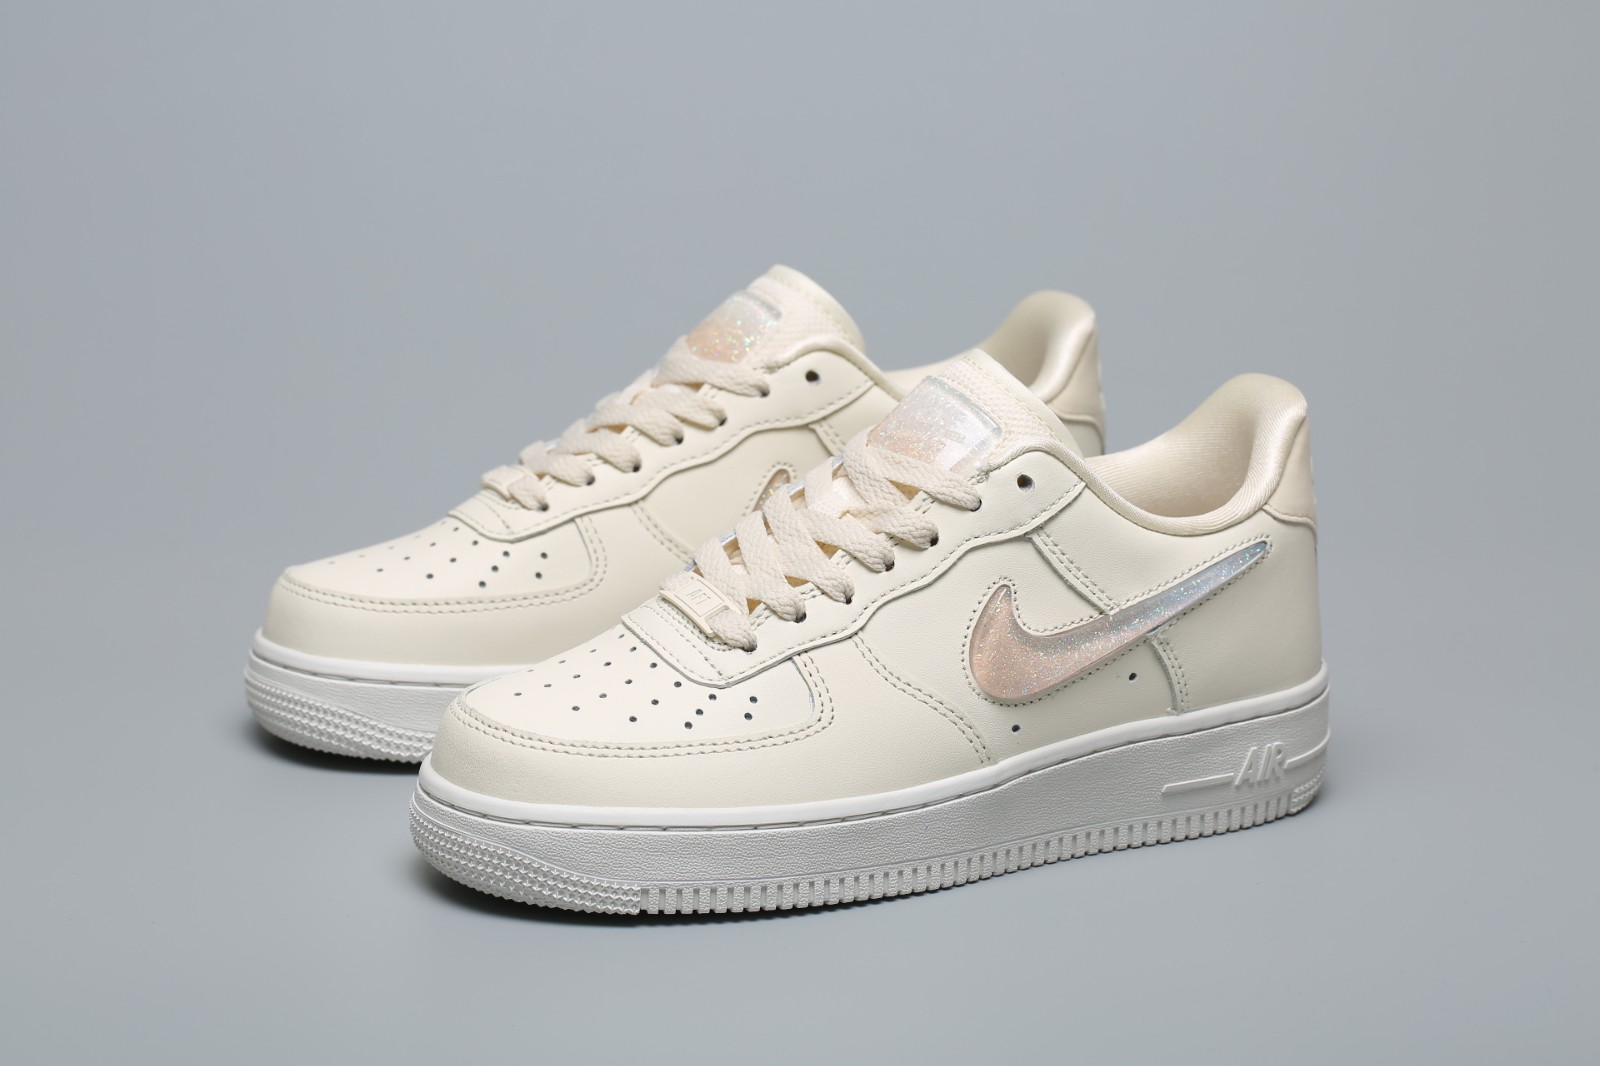 Nike Air Force 1 07 SE Premium Pale Ivory AH6827 100